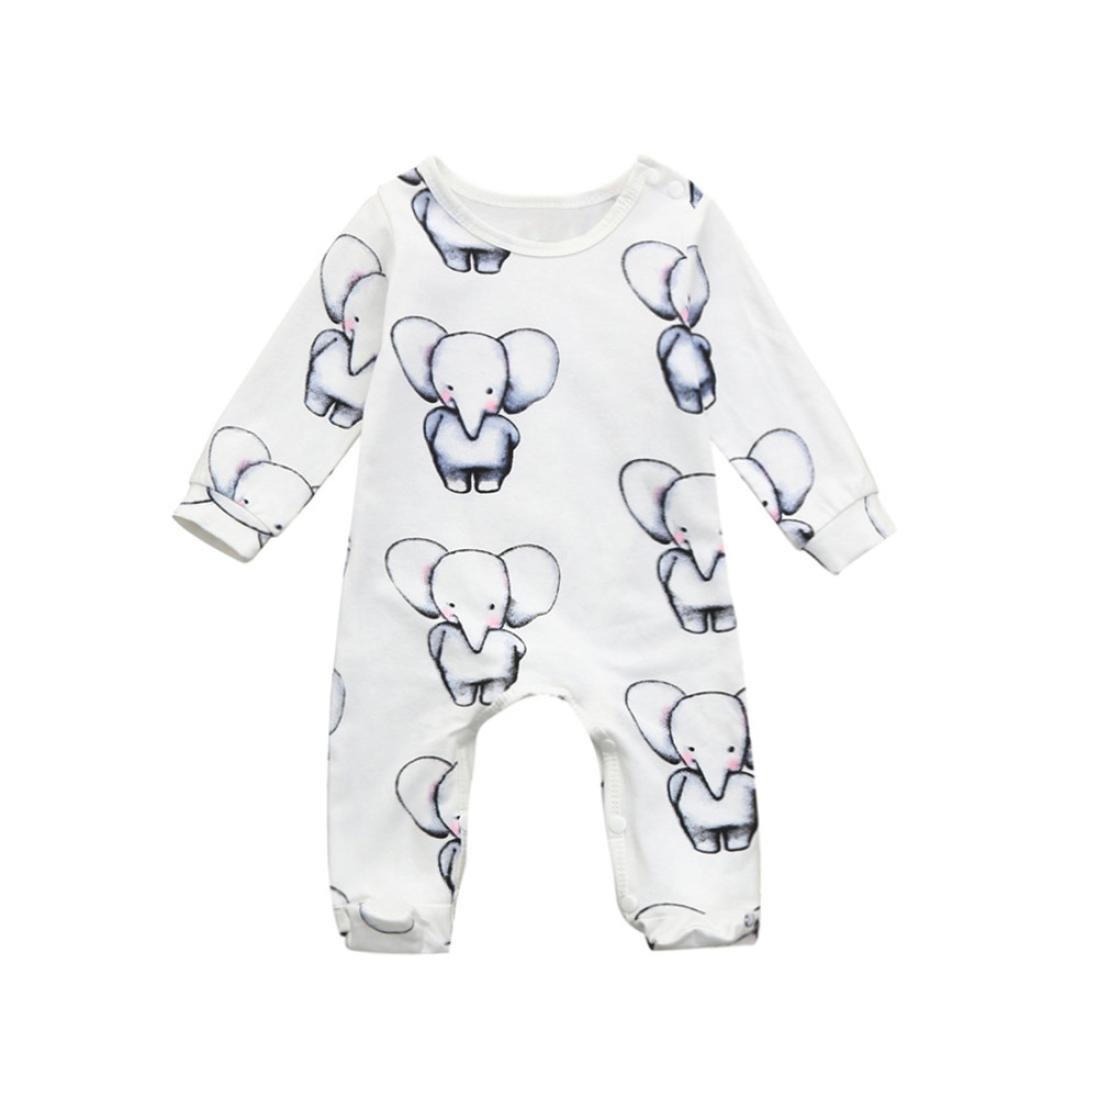 c4c8cdd97 CHshe Baby Jumpsuit